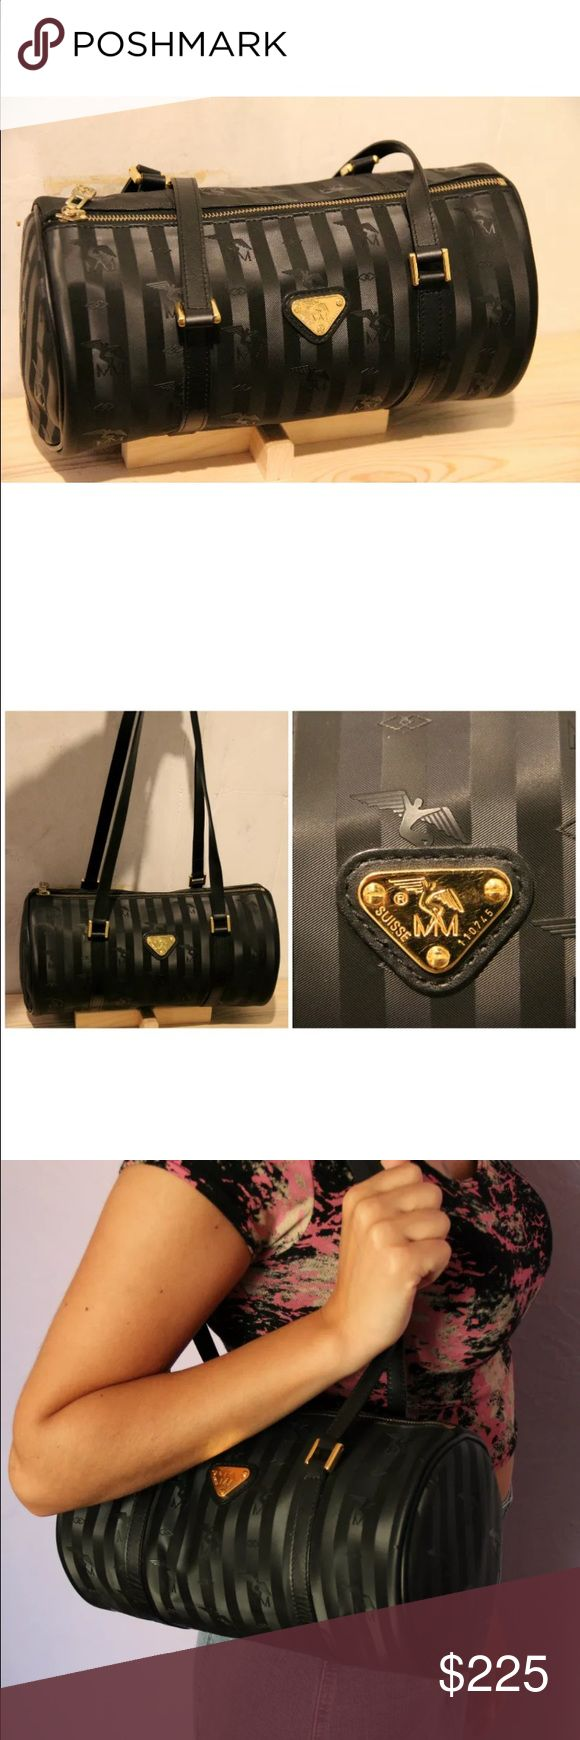 Mollerus purse In excellent used condition. A Swiss designer name brand. Beautiful vinyl material that won't scratch and will last forever. Mollerus Bags Shoulder Bags